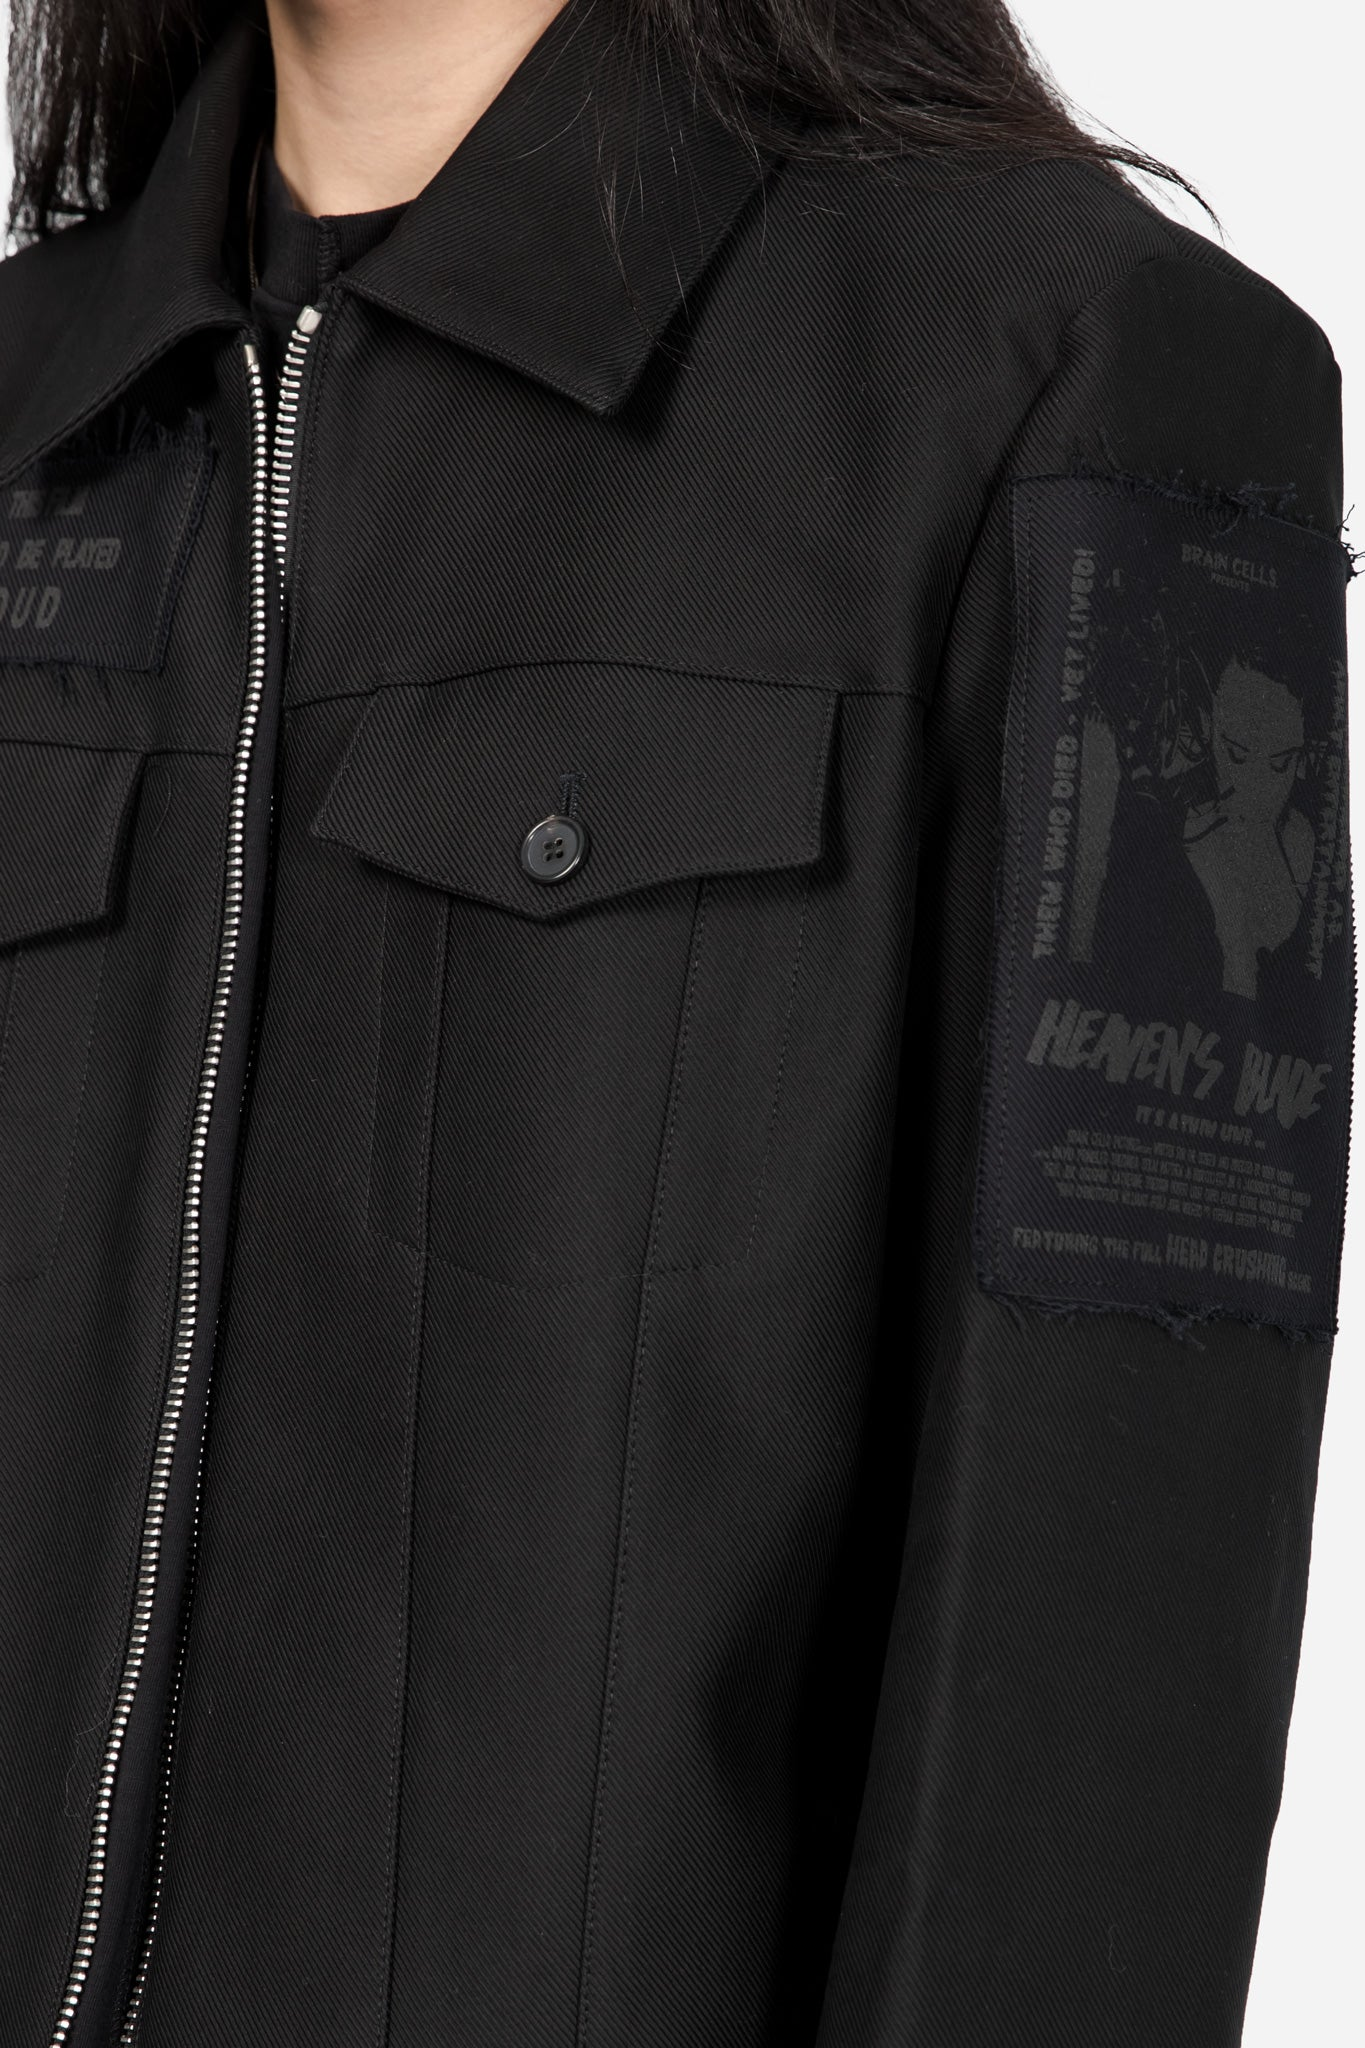 Blouson with Patches Black